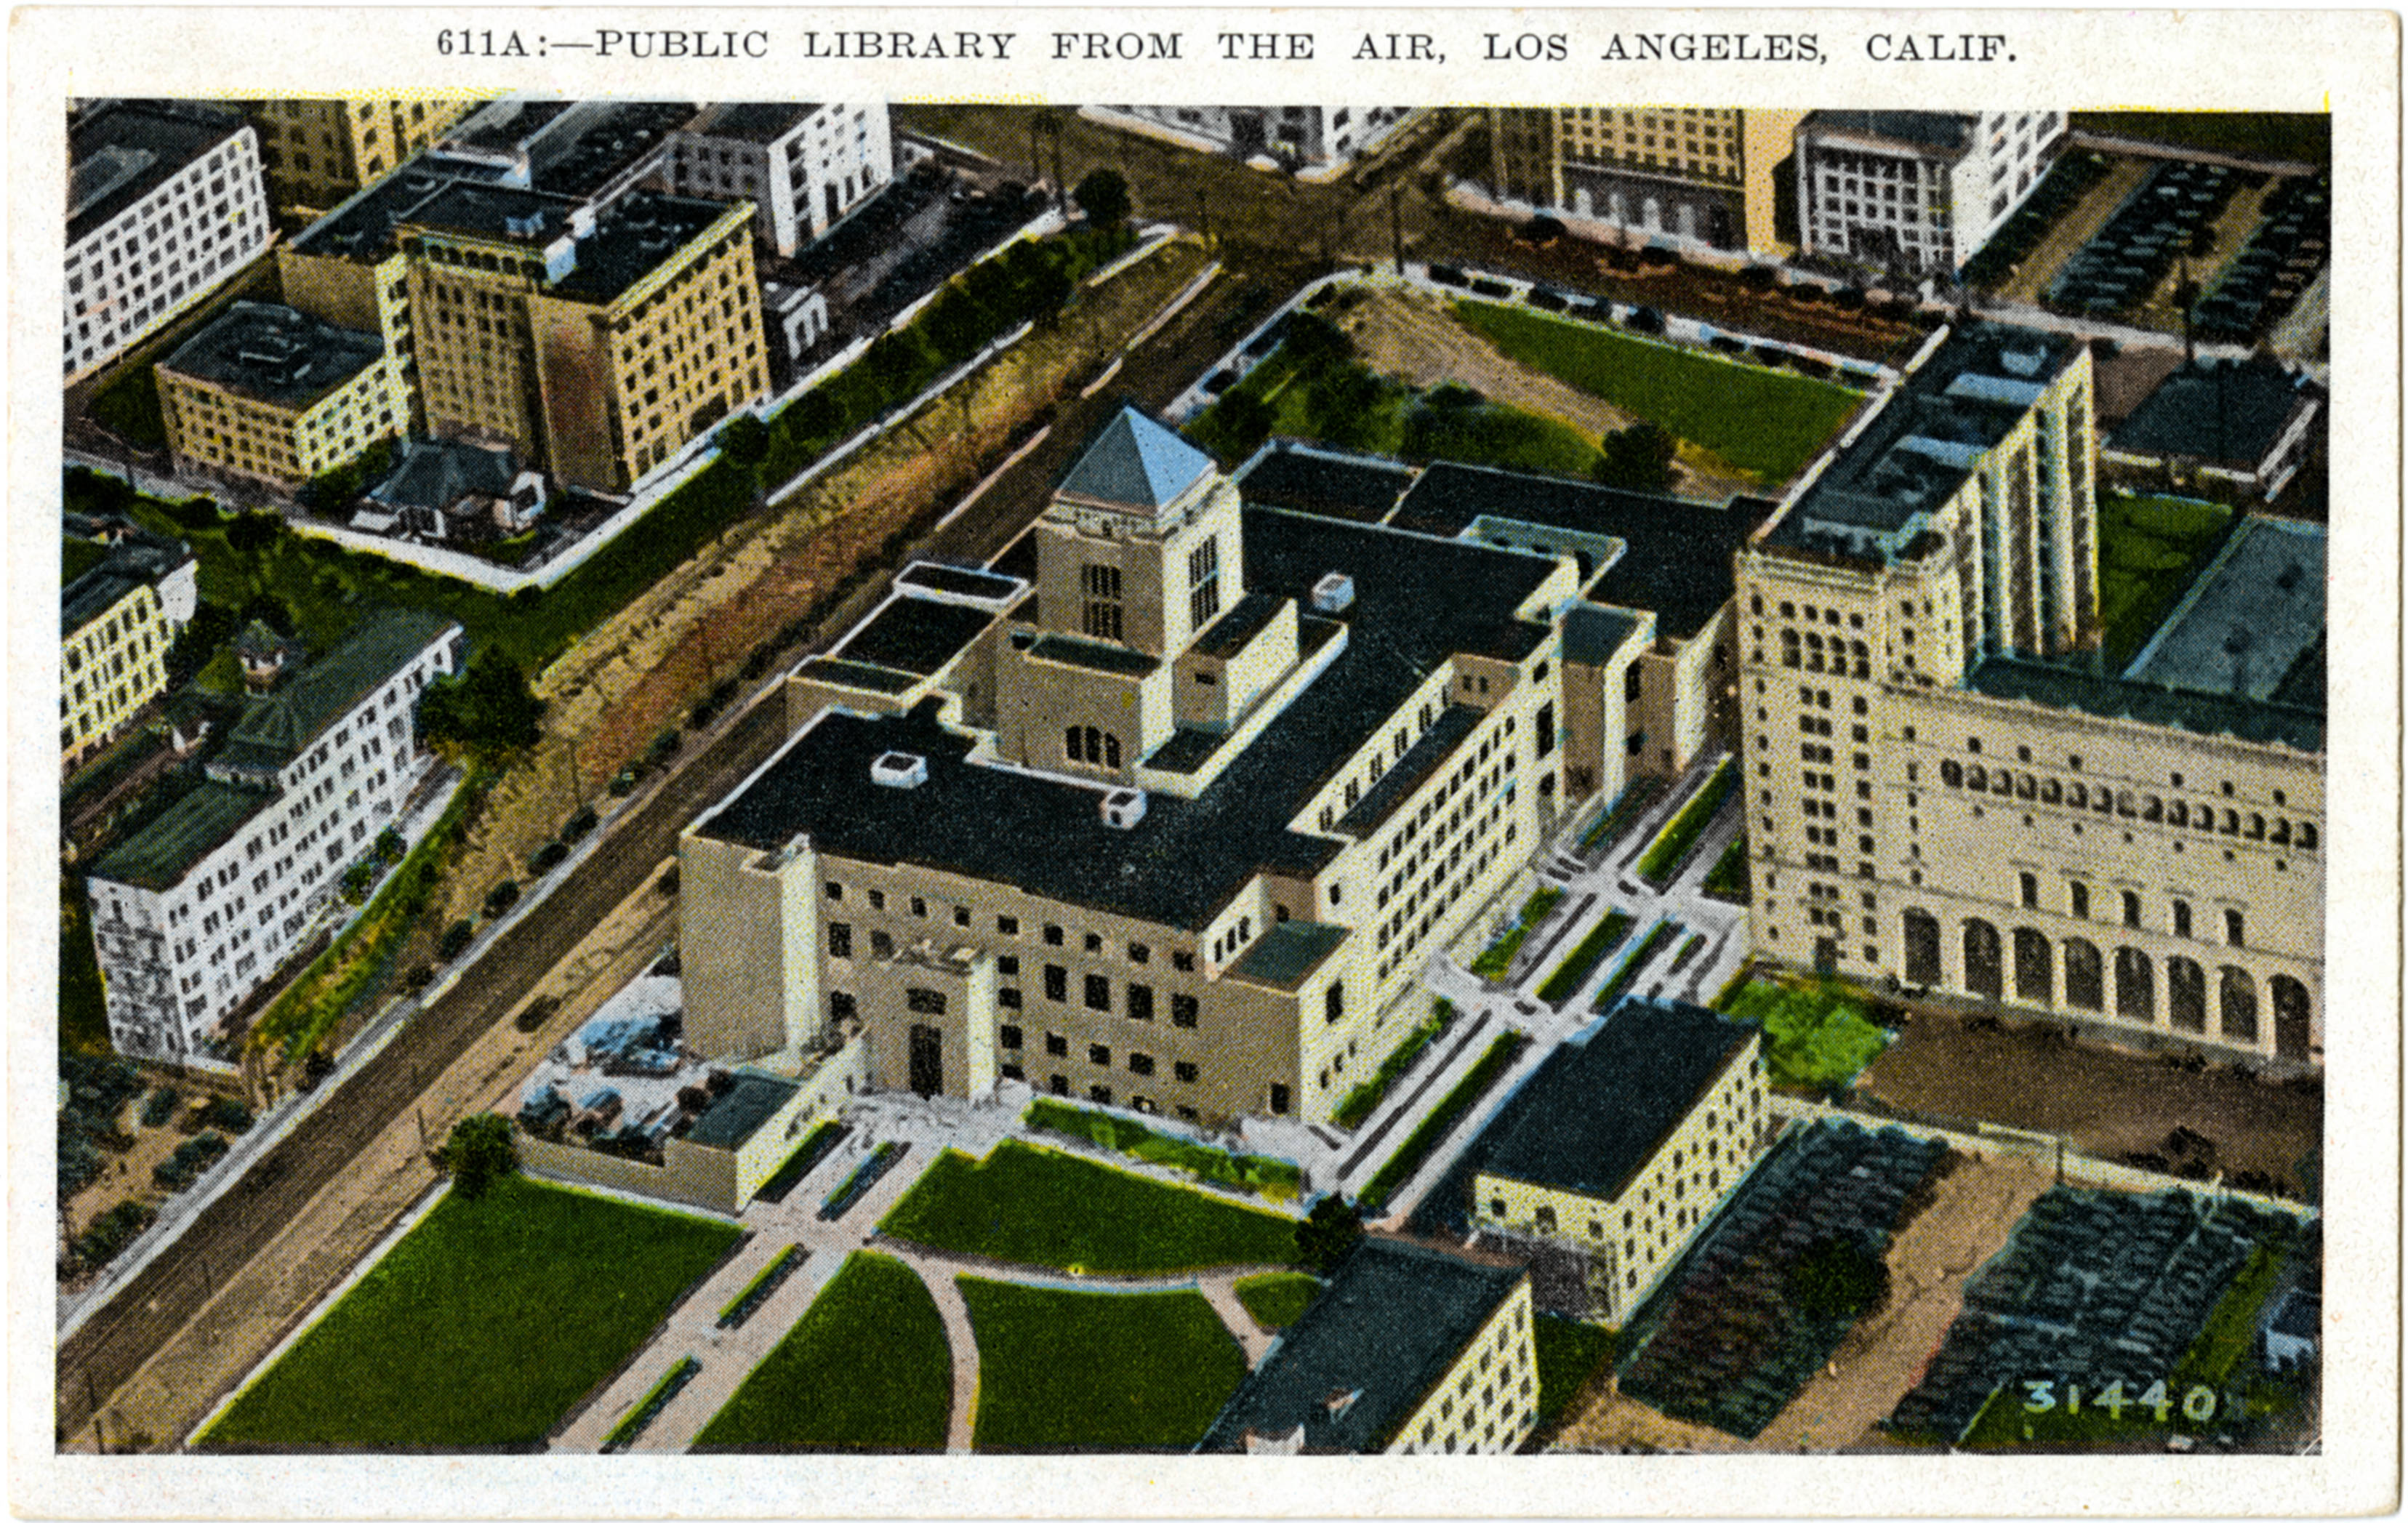 Circa 1928 postcard featuring an aerial view of the Central Library